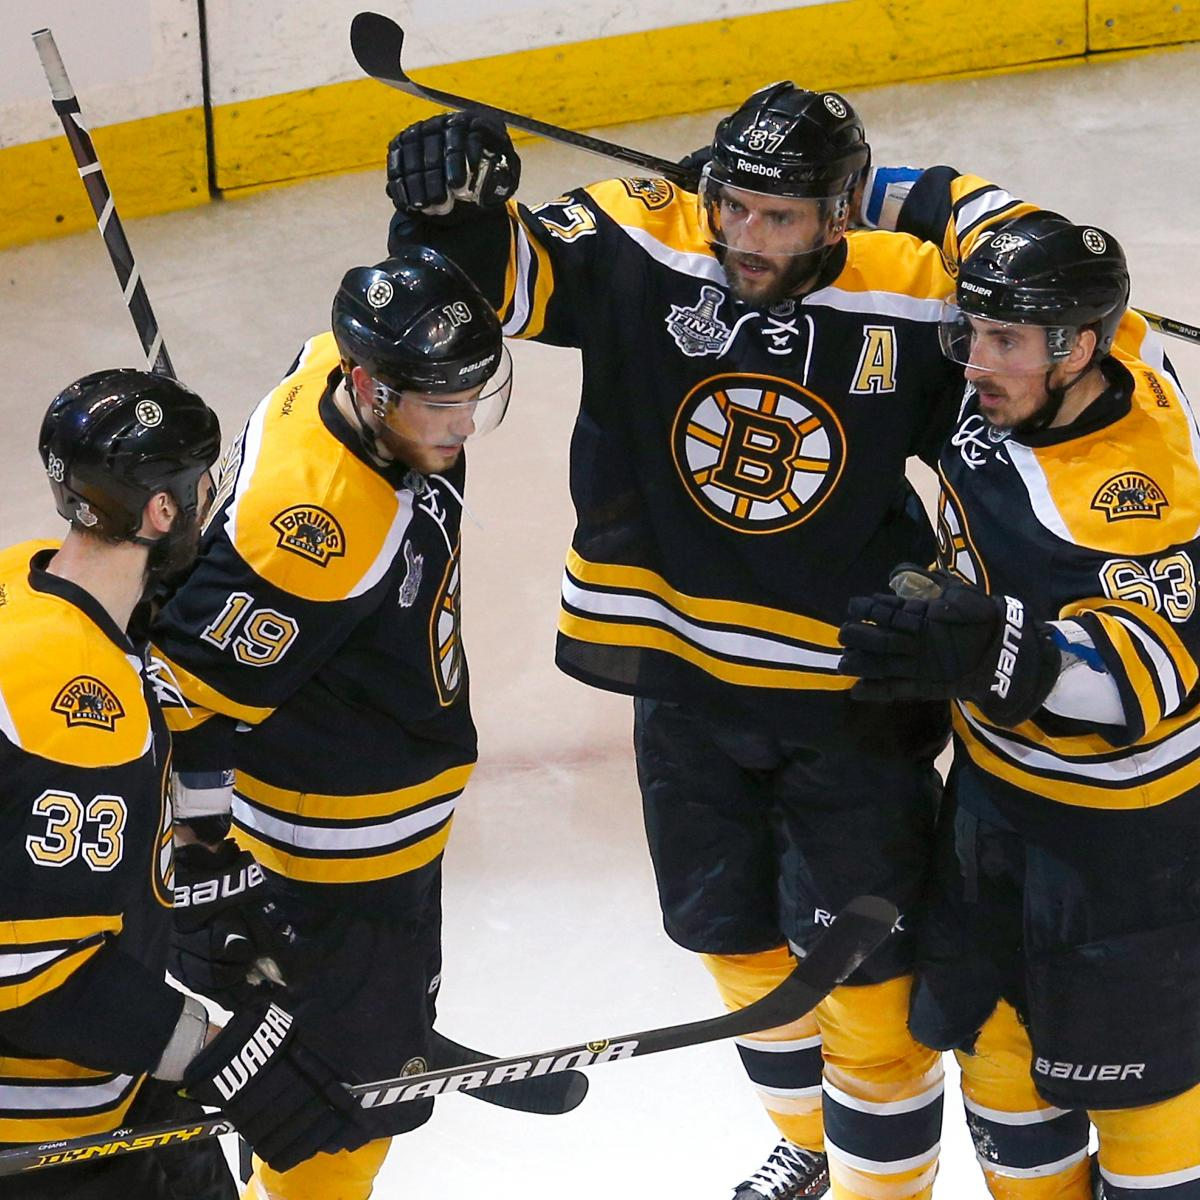 Patrice Bergeron Injury: Reported Return Will Inspire